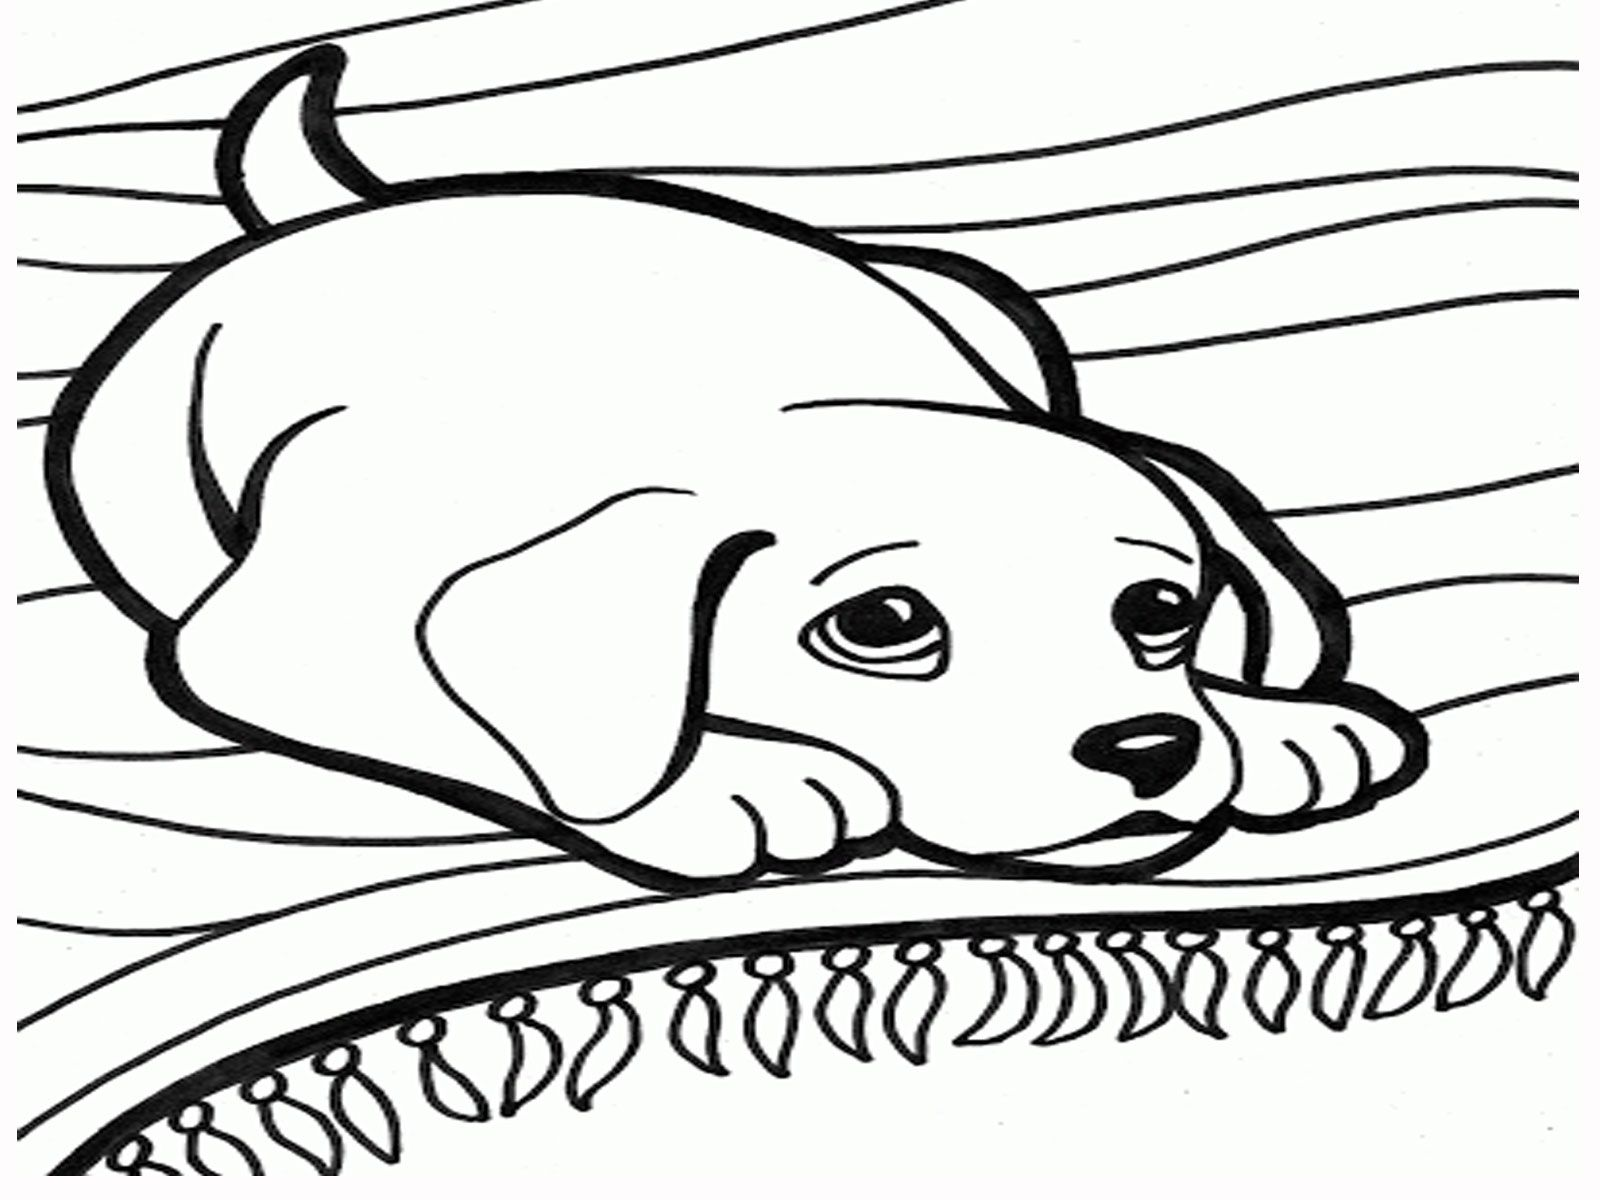 1600x1200 Realistic Dog Coloring Pages Az Coloring Pages Robyn